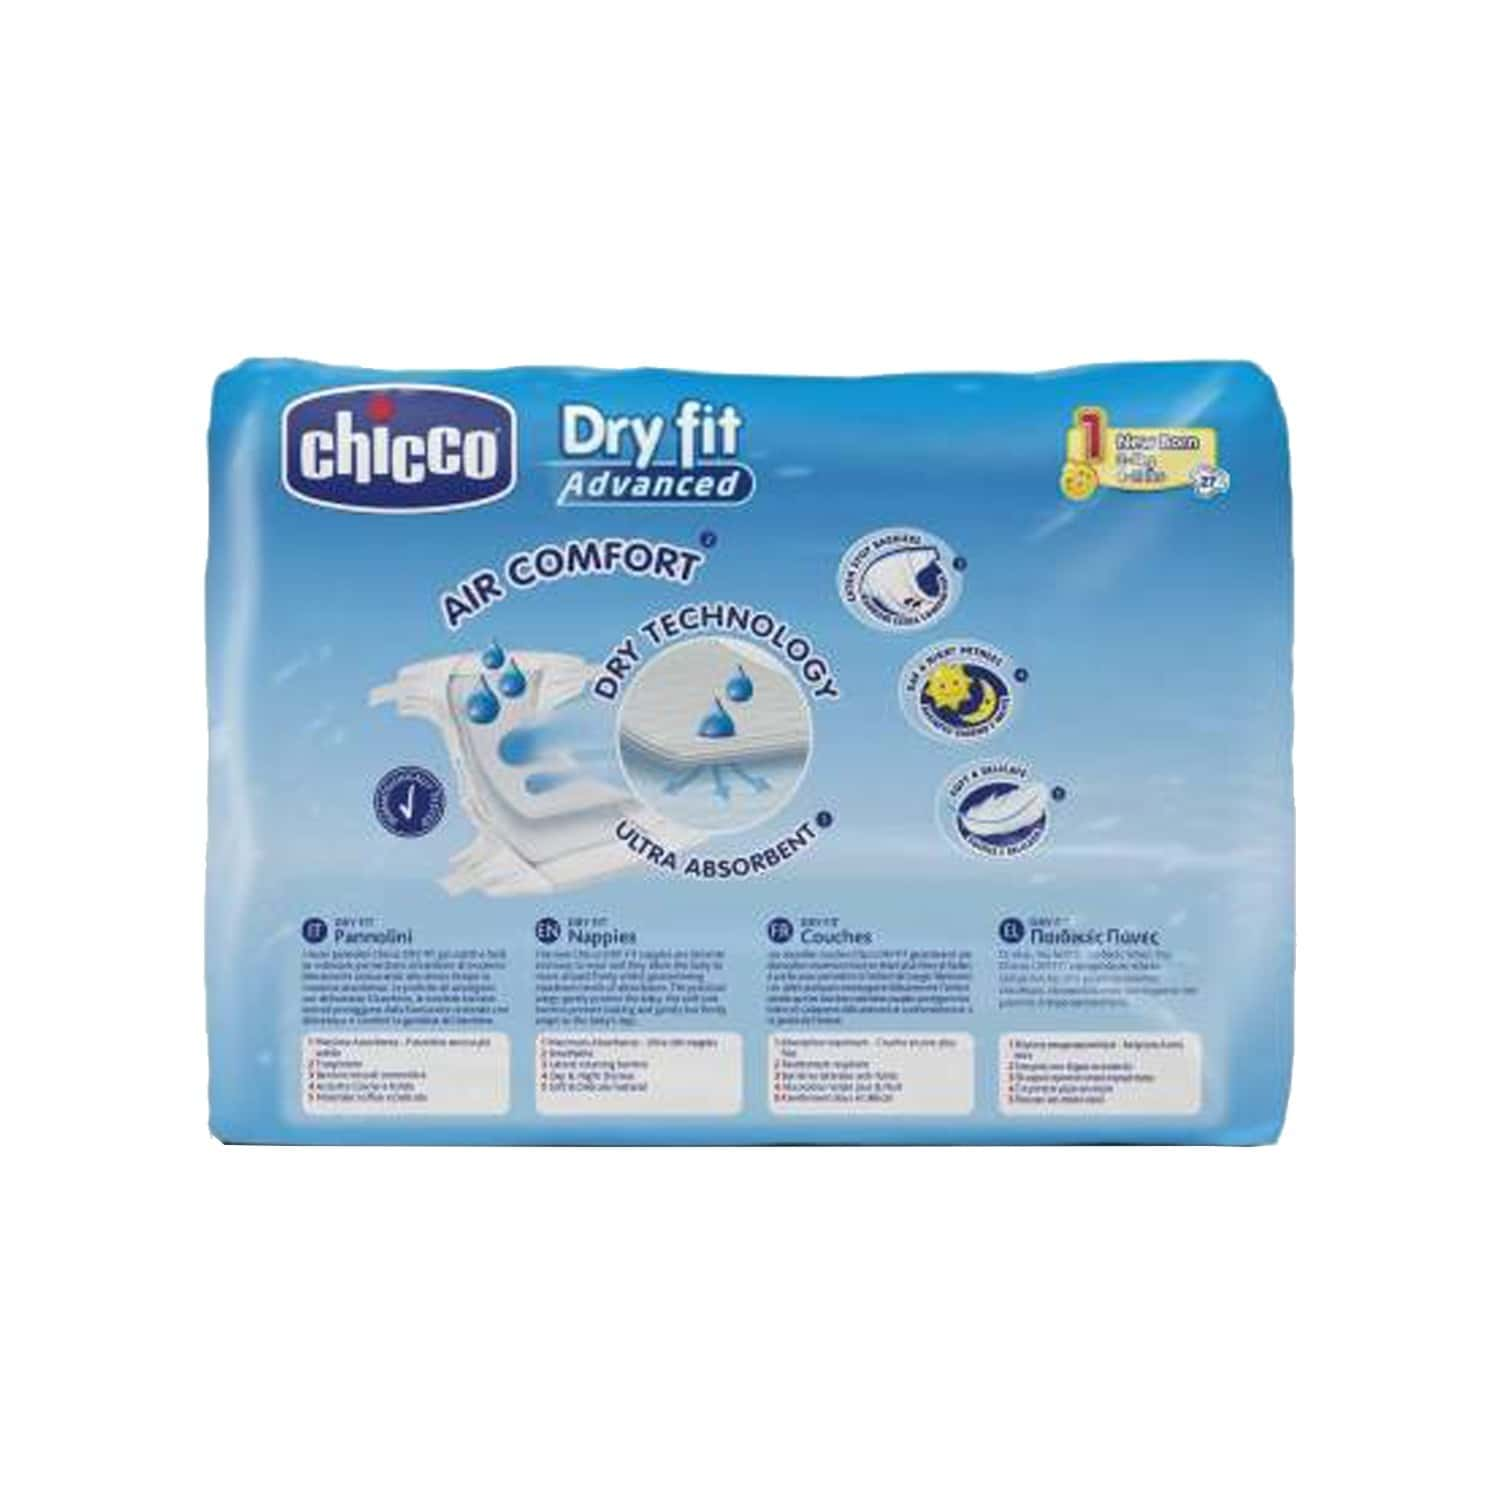 Chicco Baby Dry Fit Advanced Diaper Mini Packet Of 25